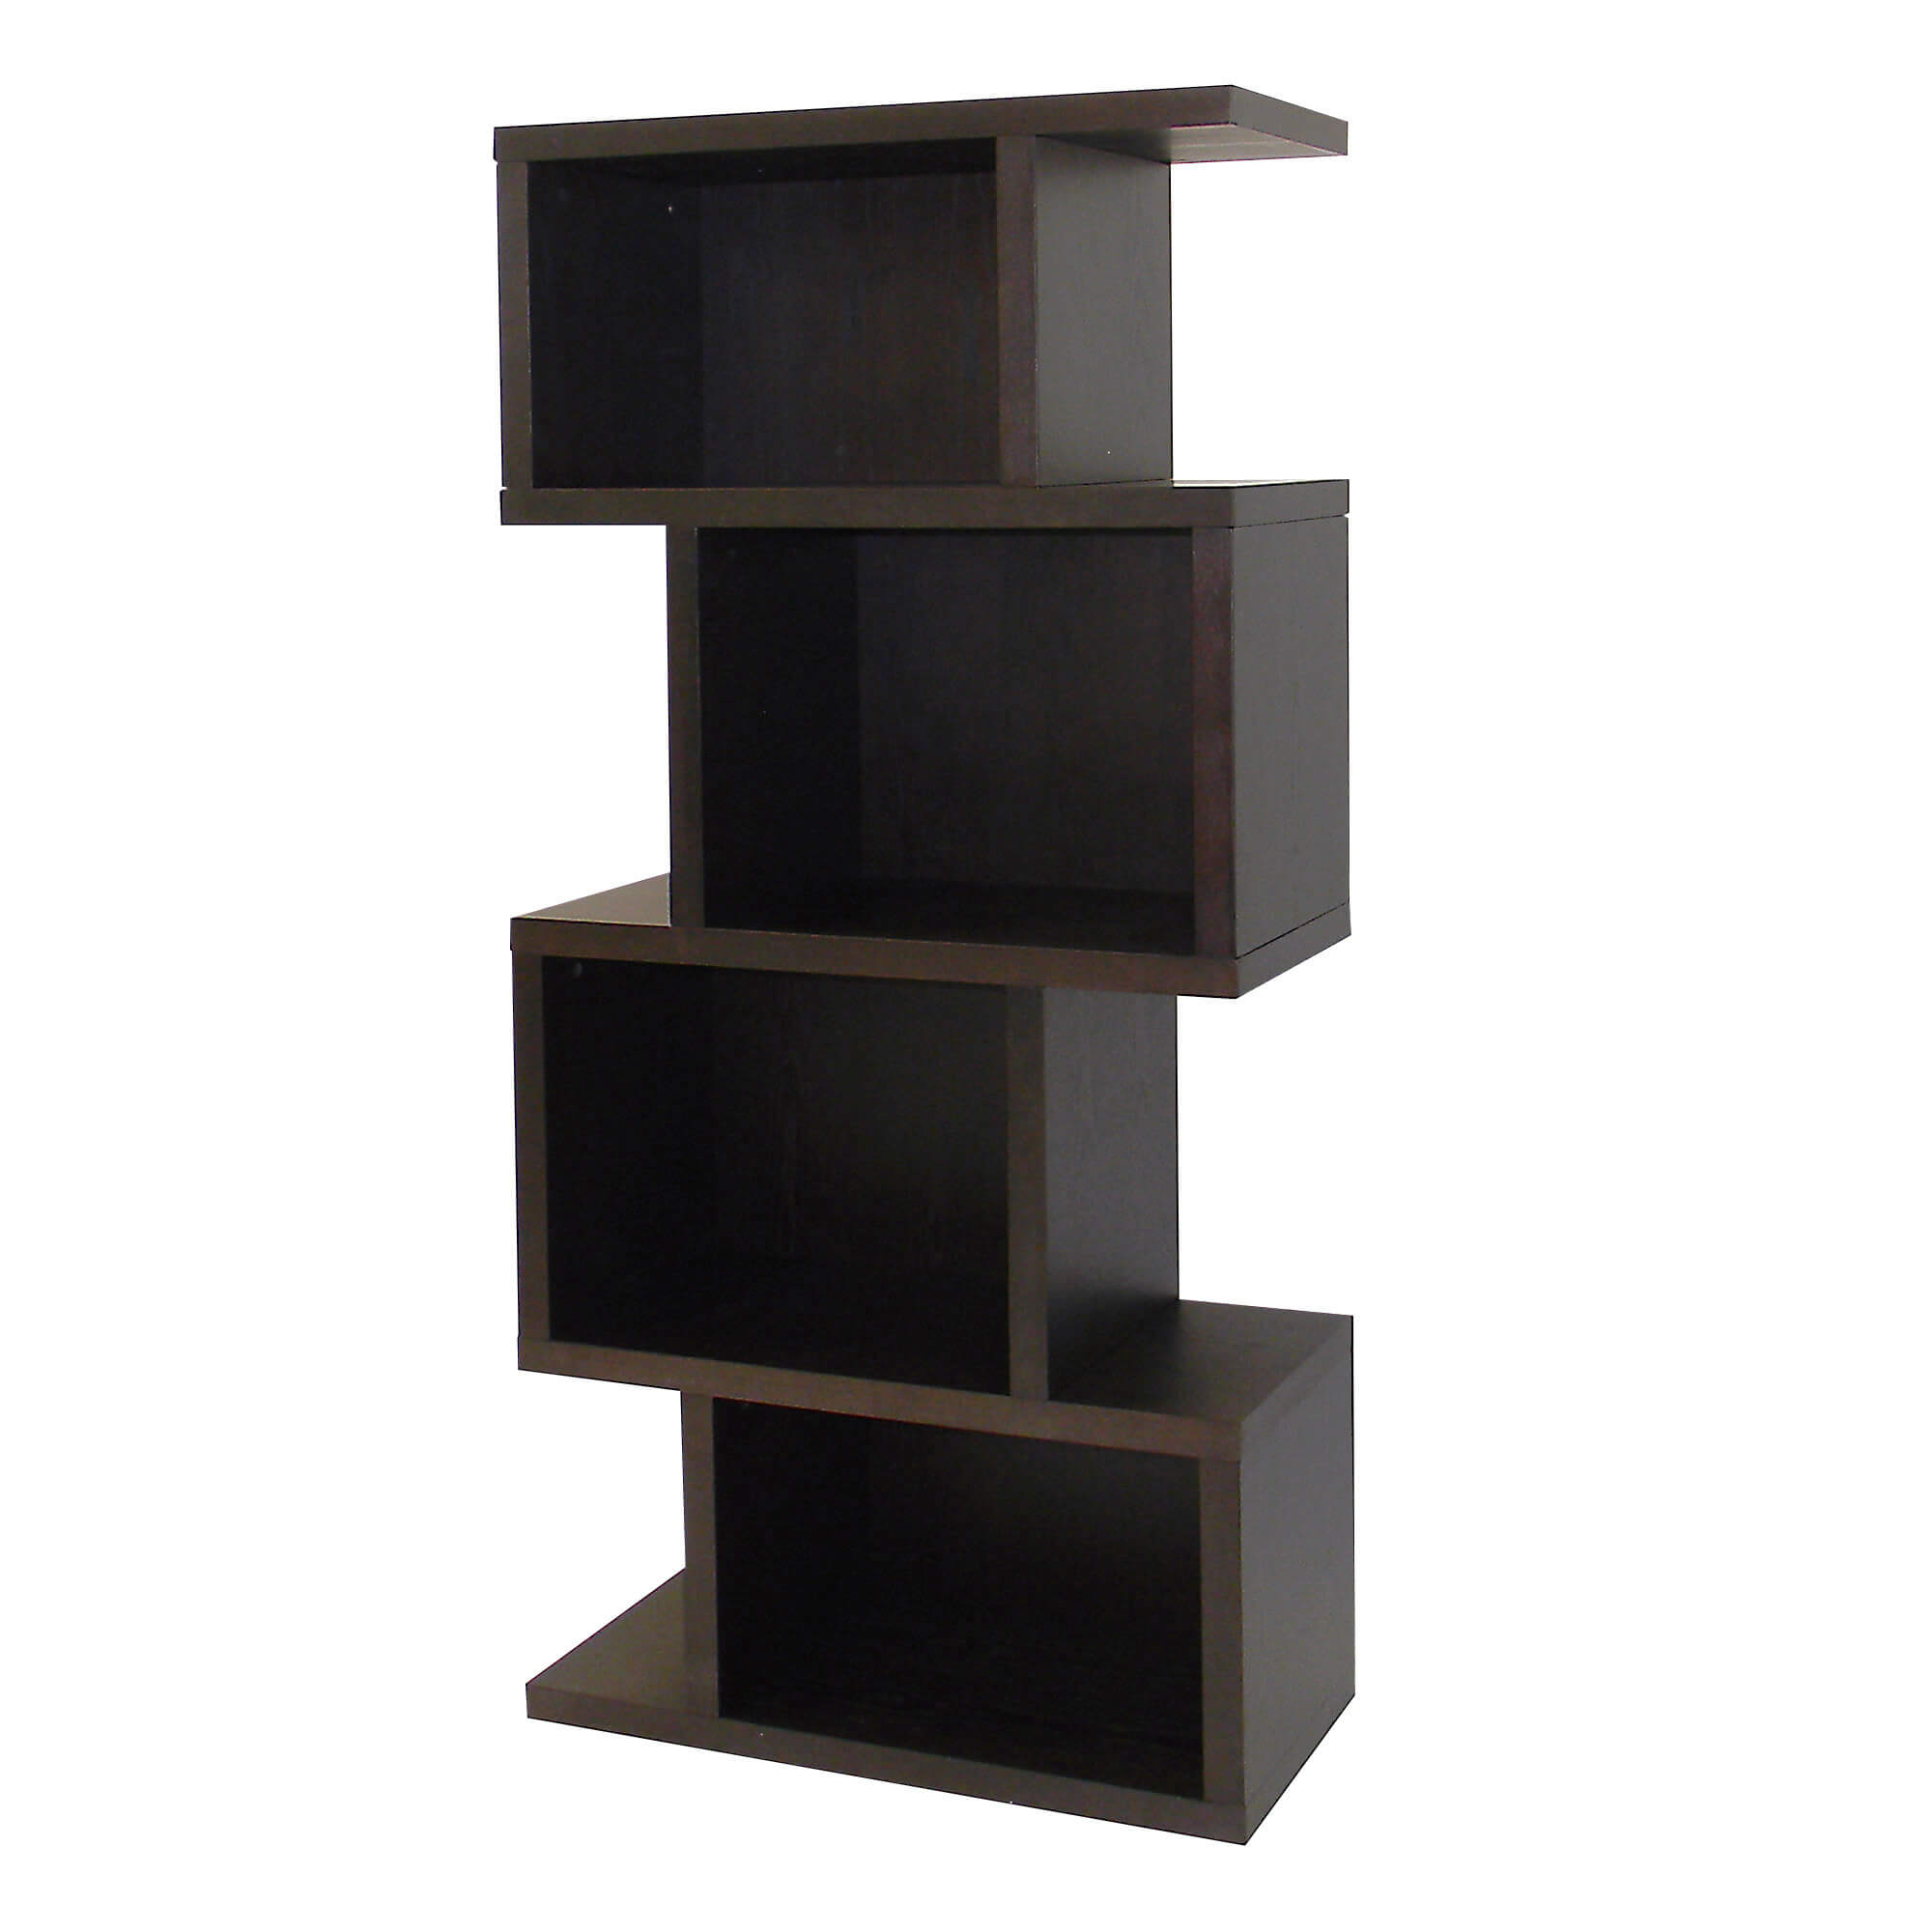 dbn in crowdyhouse angular on shelf totem cubes shop situ bookcase side